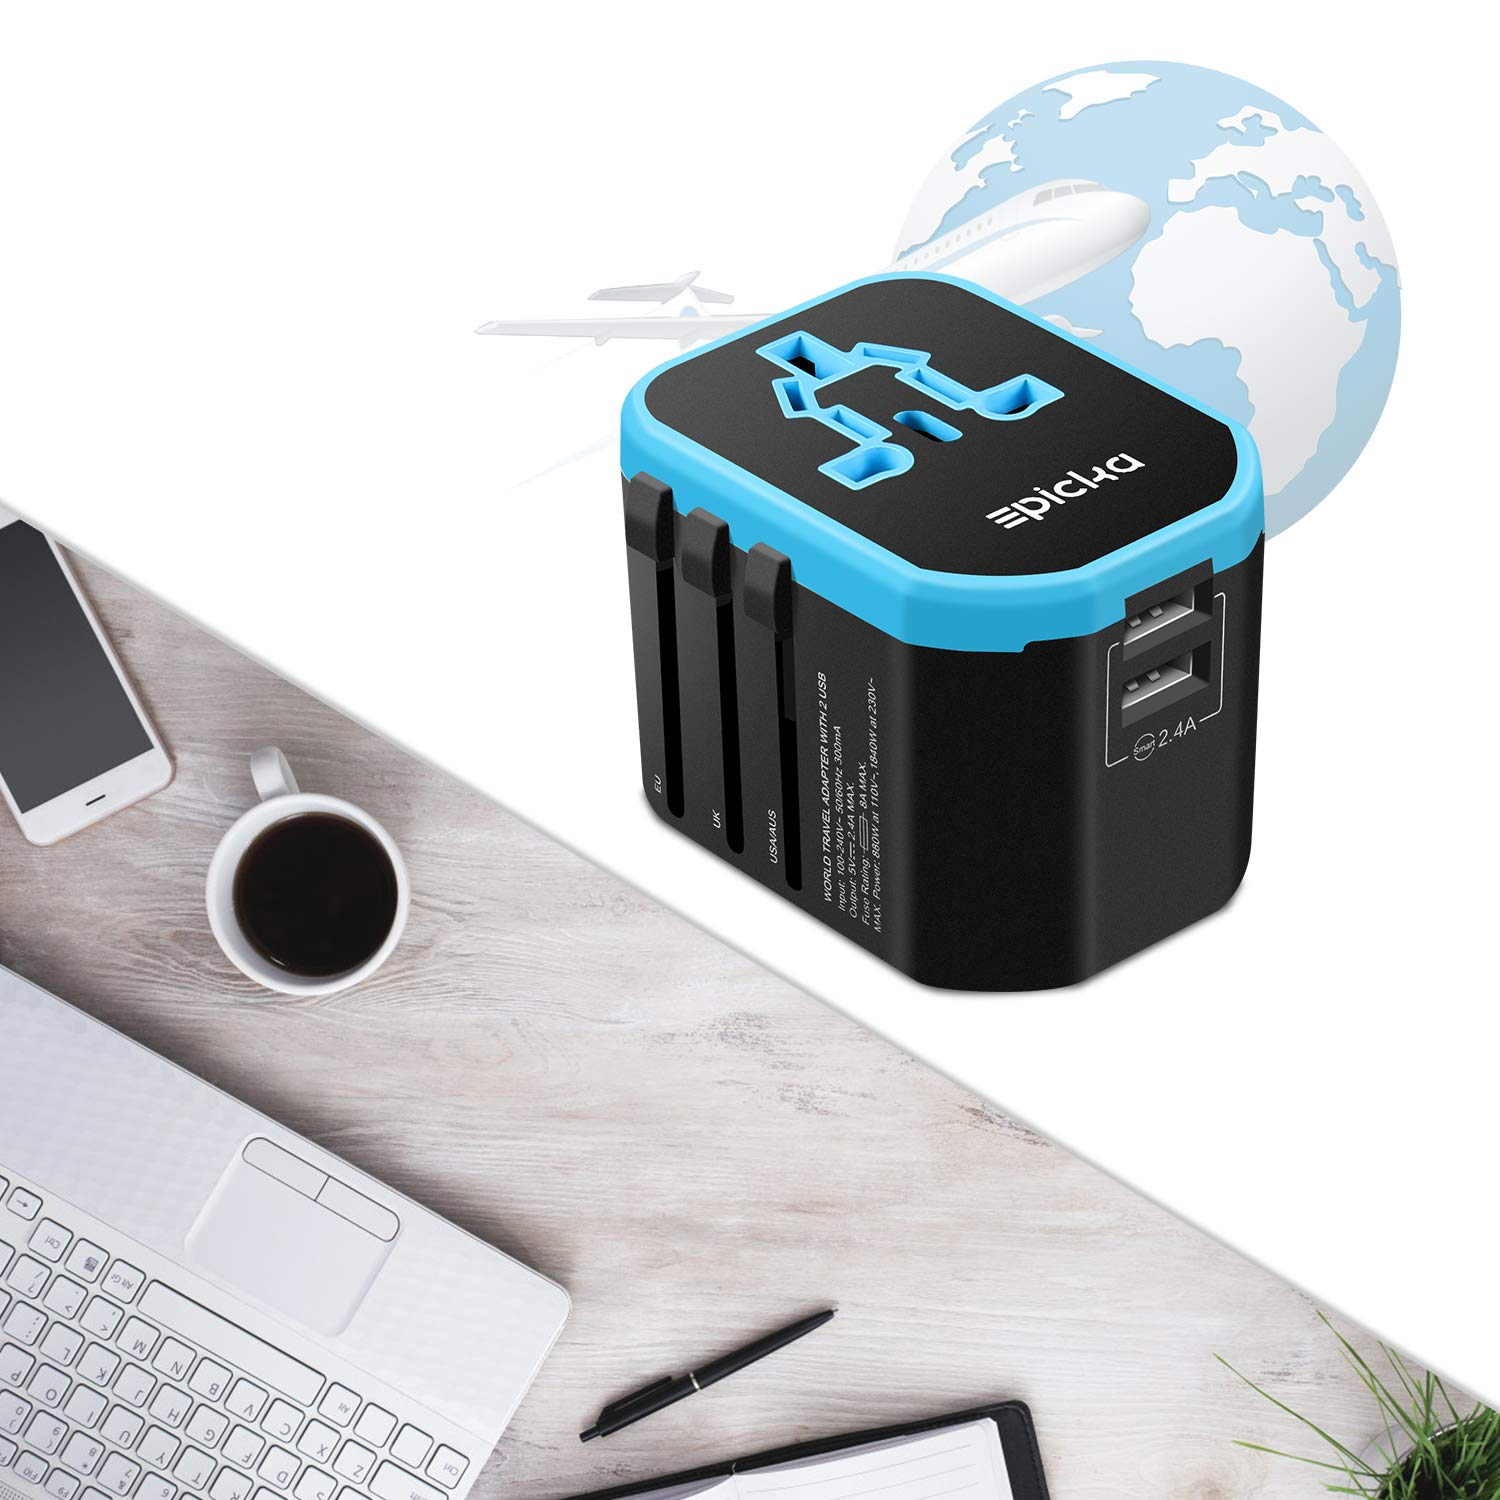 Travel Adapter Blue New EPICKA All in One Worldwide Universal Power Adapter AC Plug Adapter with Dual USB Charging Ports for USA EU UK AUS Cell Phone Tablet Laptop